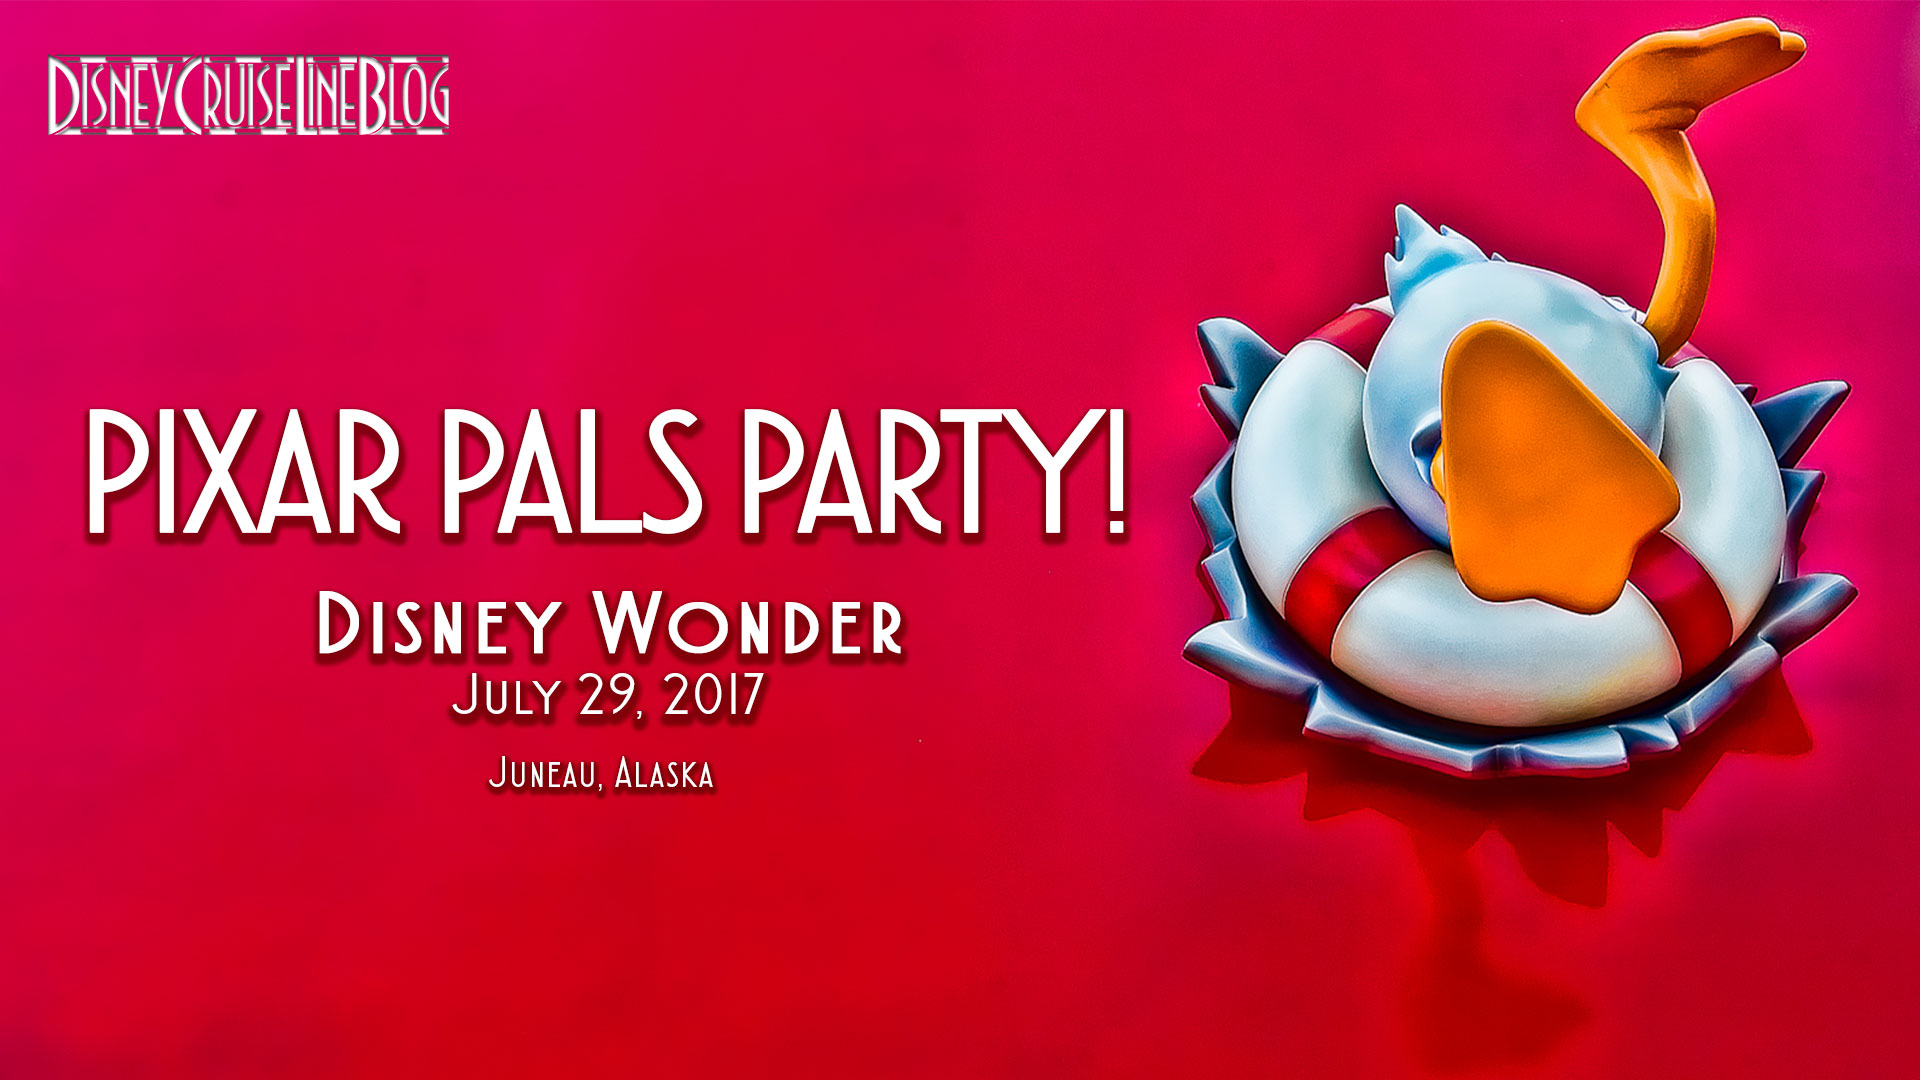 Disney Wonder Pixar Pals Party Video